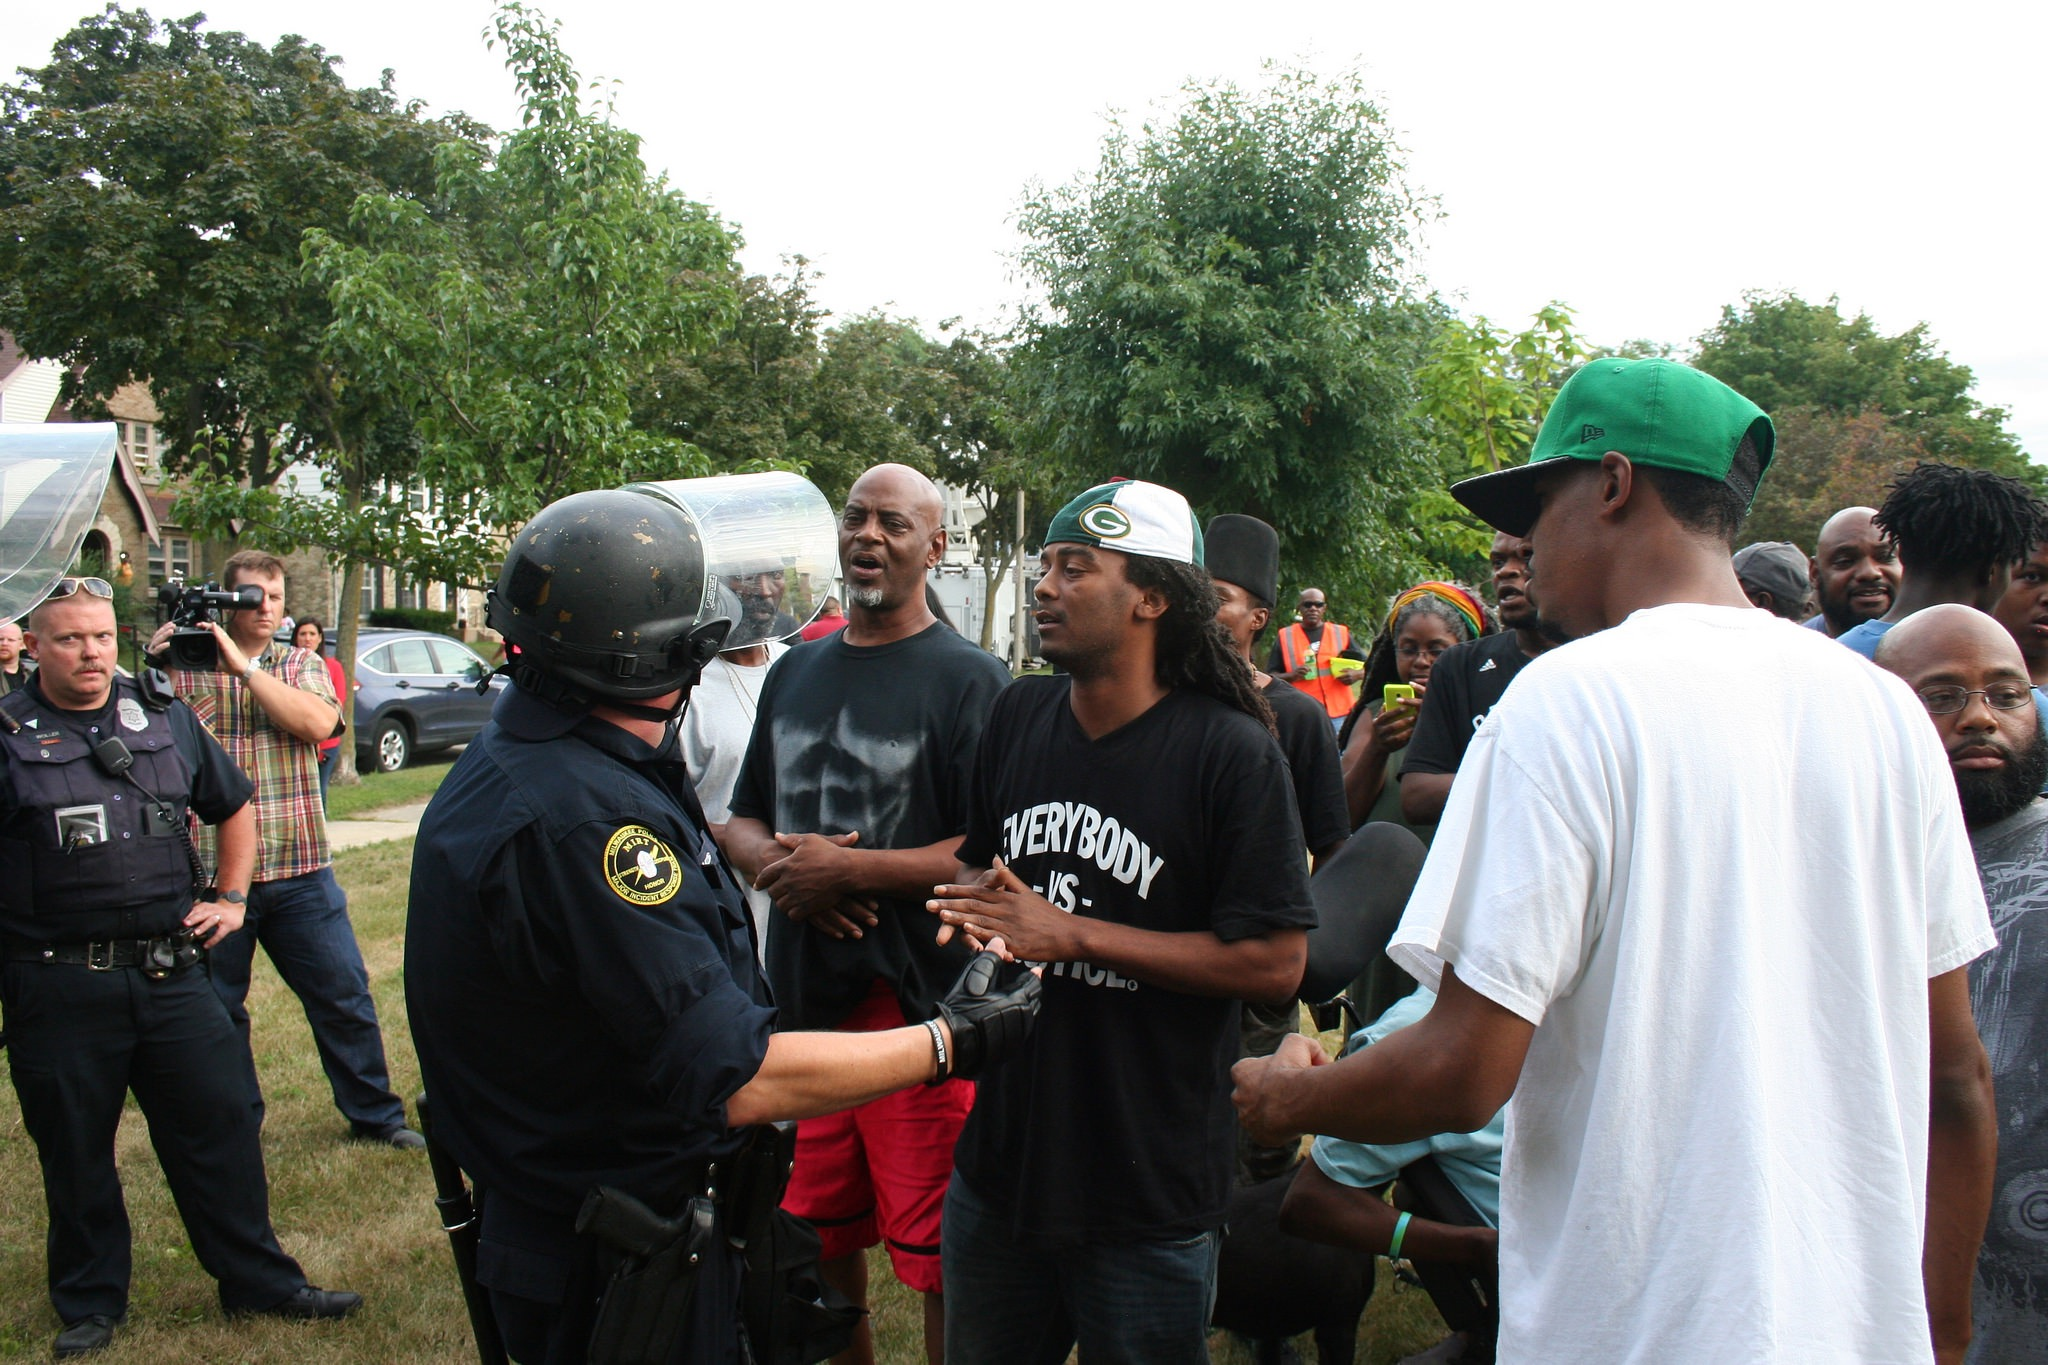 Overpolicing of North Side neighborhoods harms efforts to improve relations between police and the community, according to Milwaukee NAACP President Fred Royal. (Photo by Jabril Faraj)